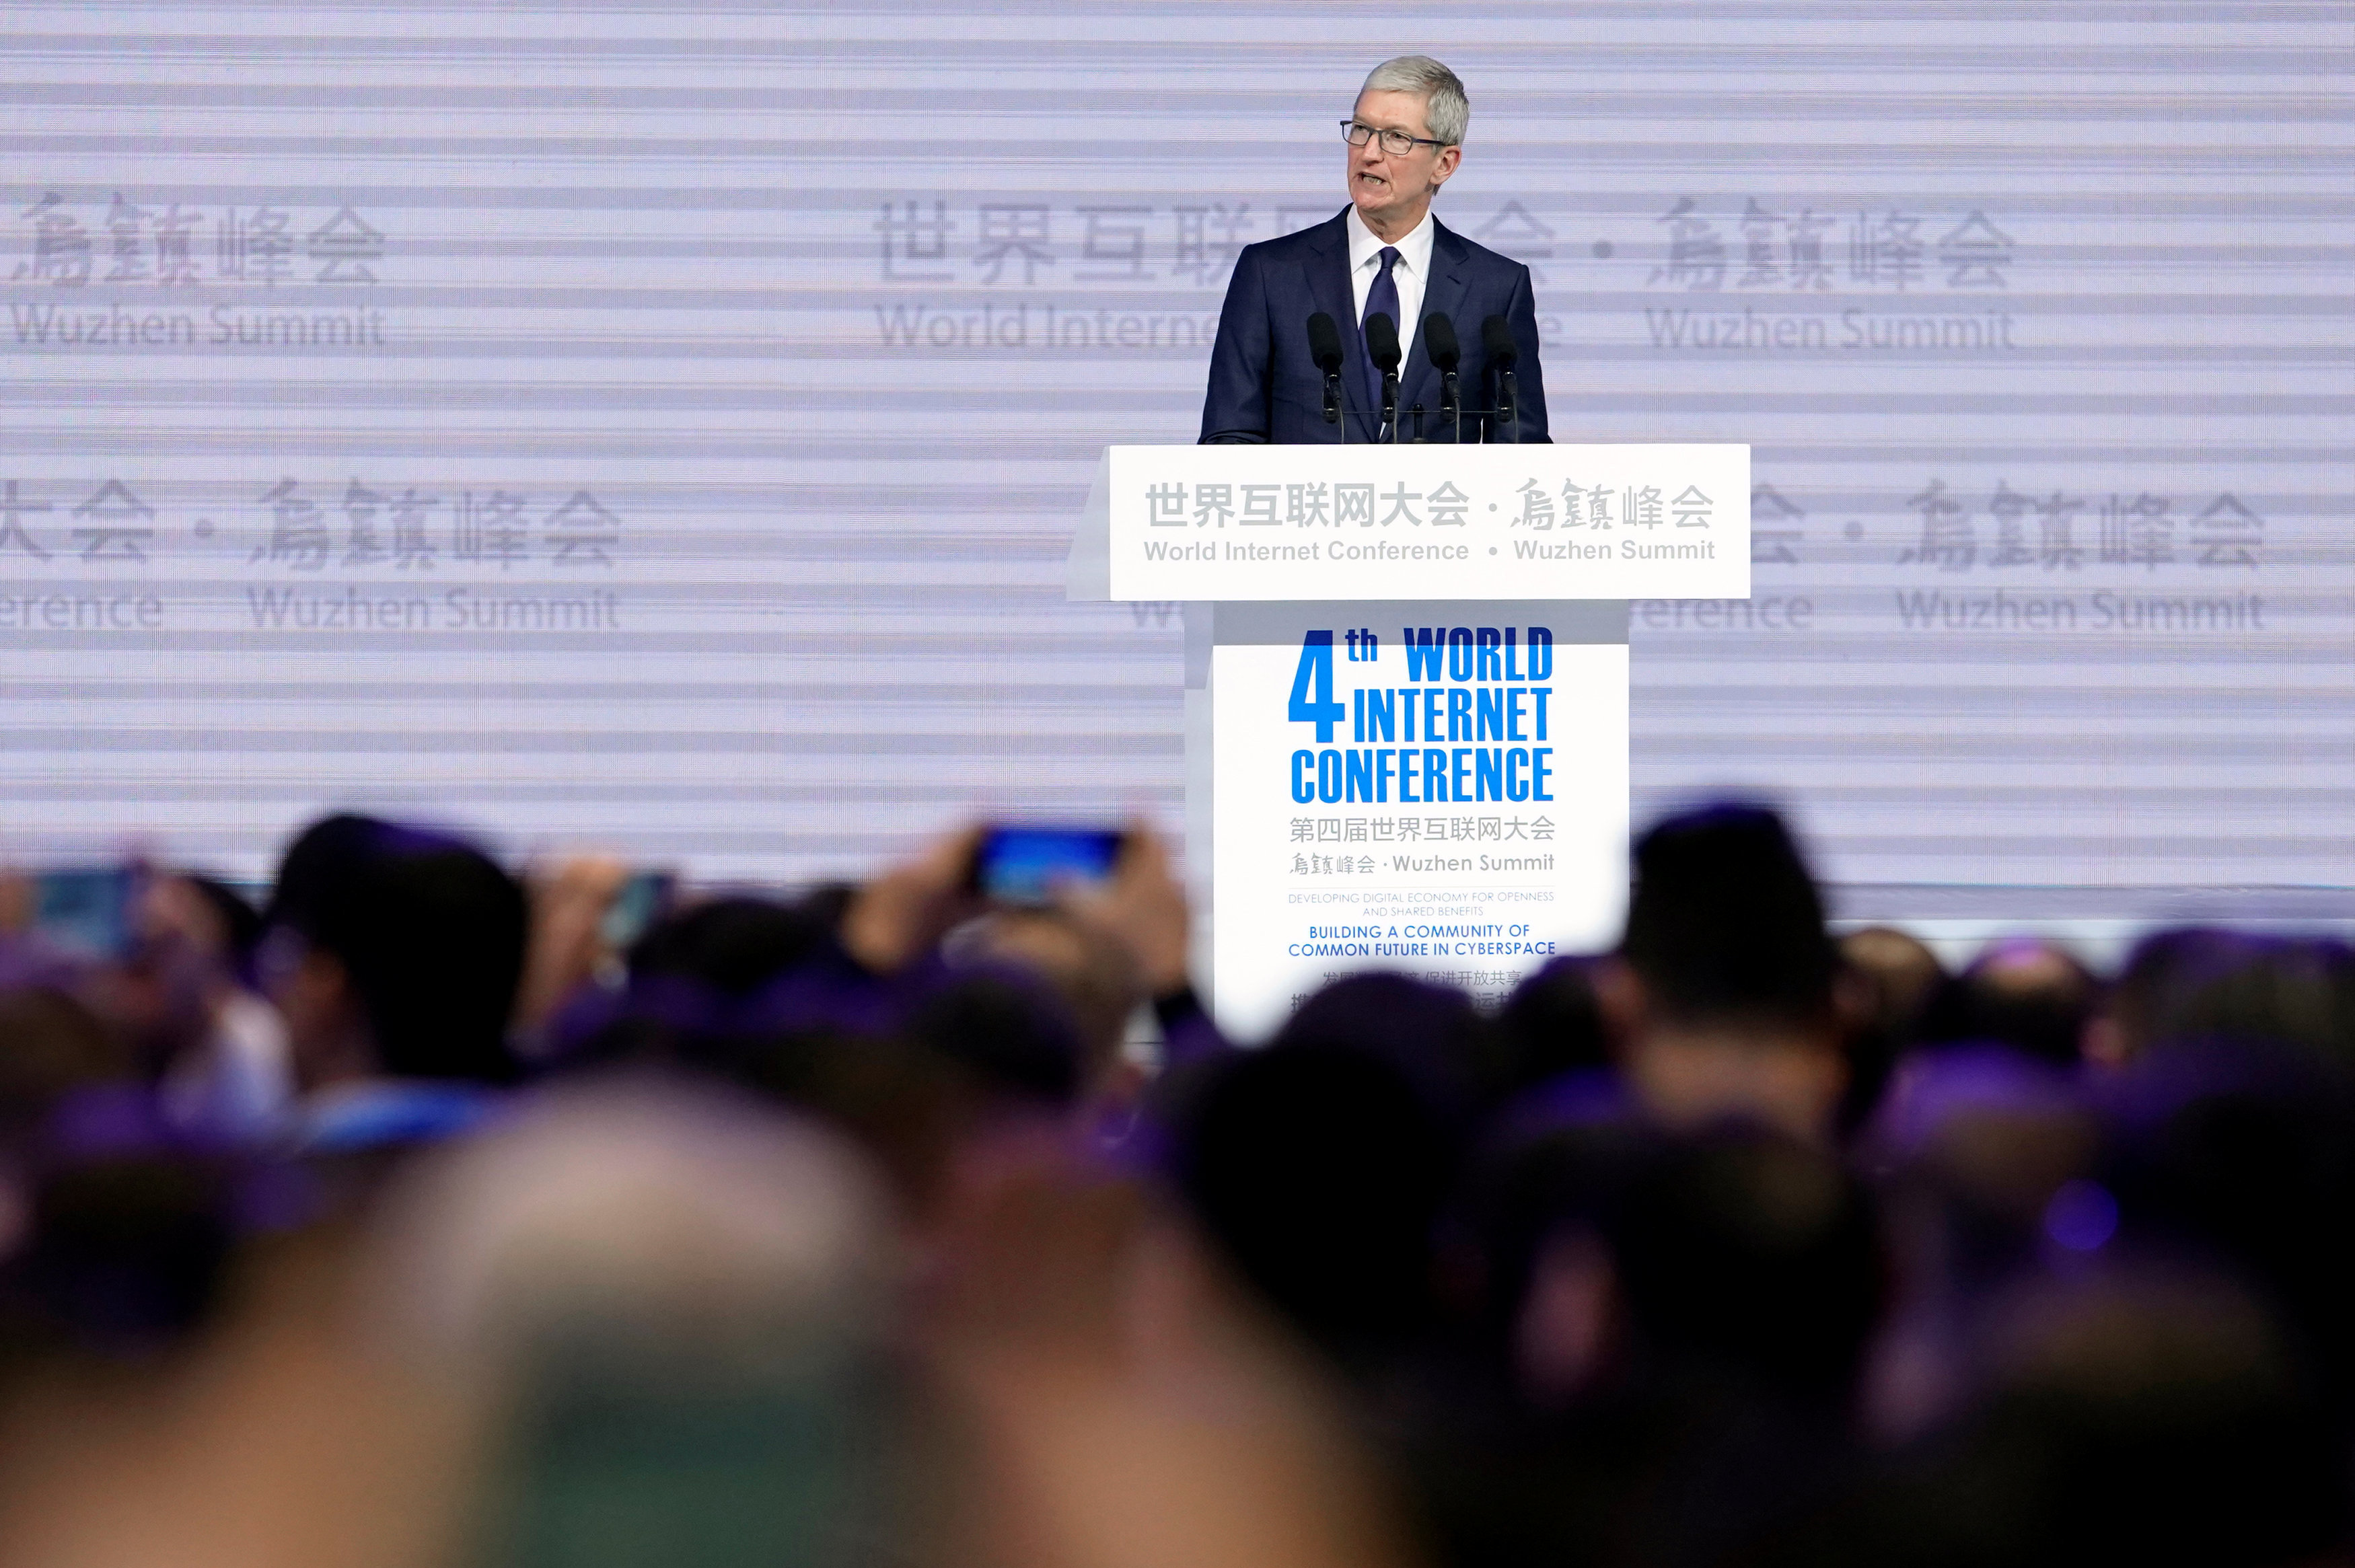 Apple CEO Tim Cook attends the opening ceremony of the fourth World Internet Conference in Wuzhen, Zhejiang province, China, December 3, 2017